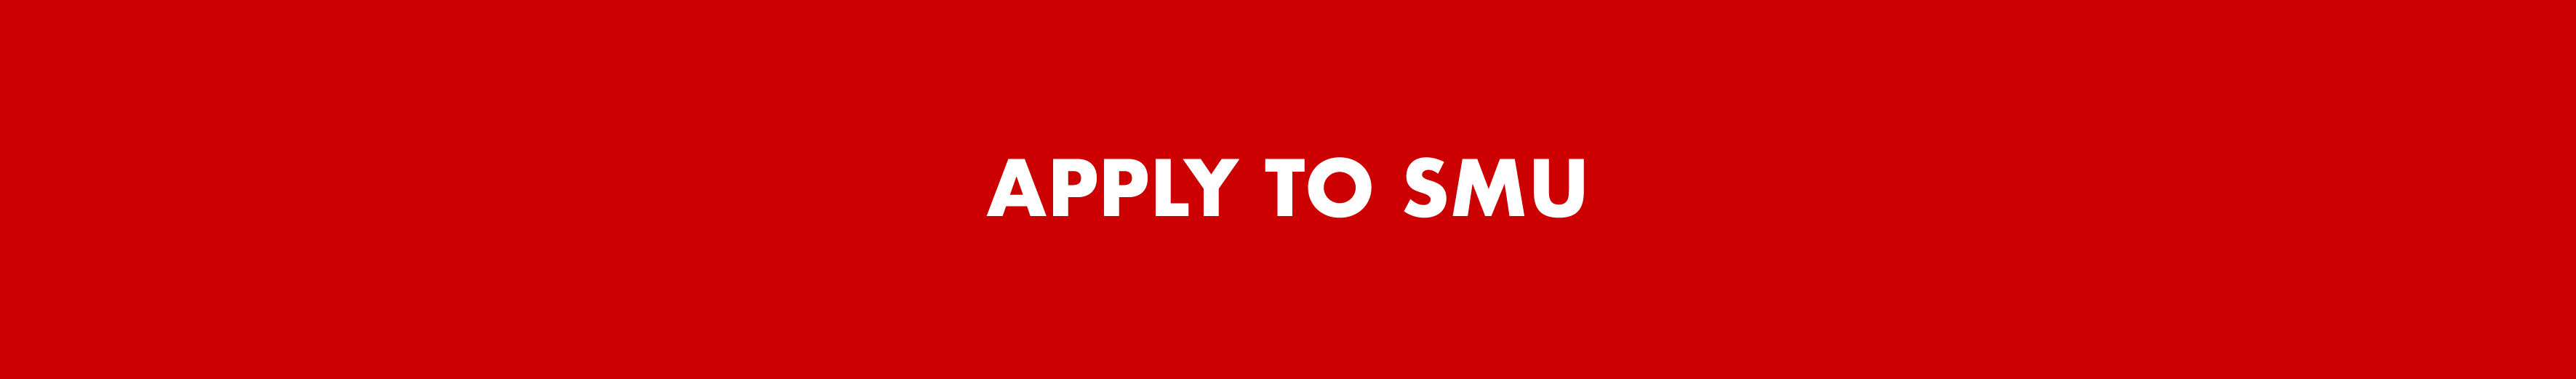 Apply to SMU!